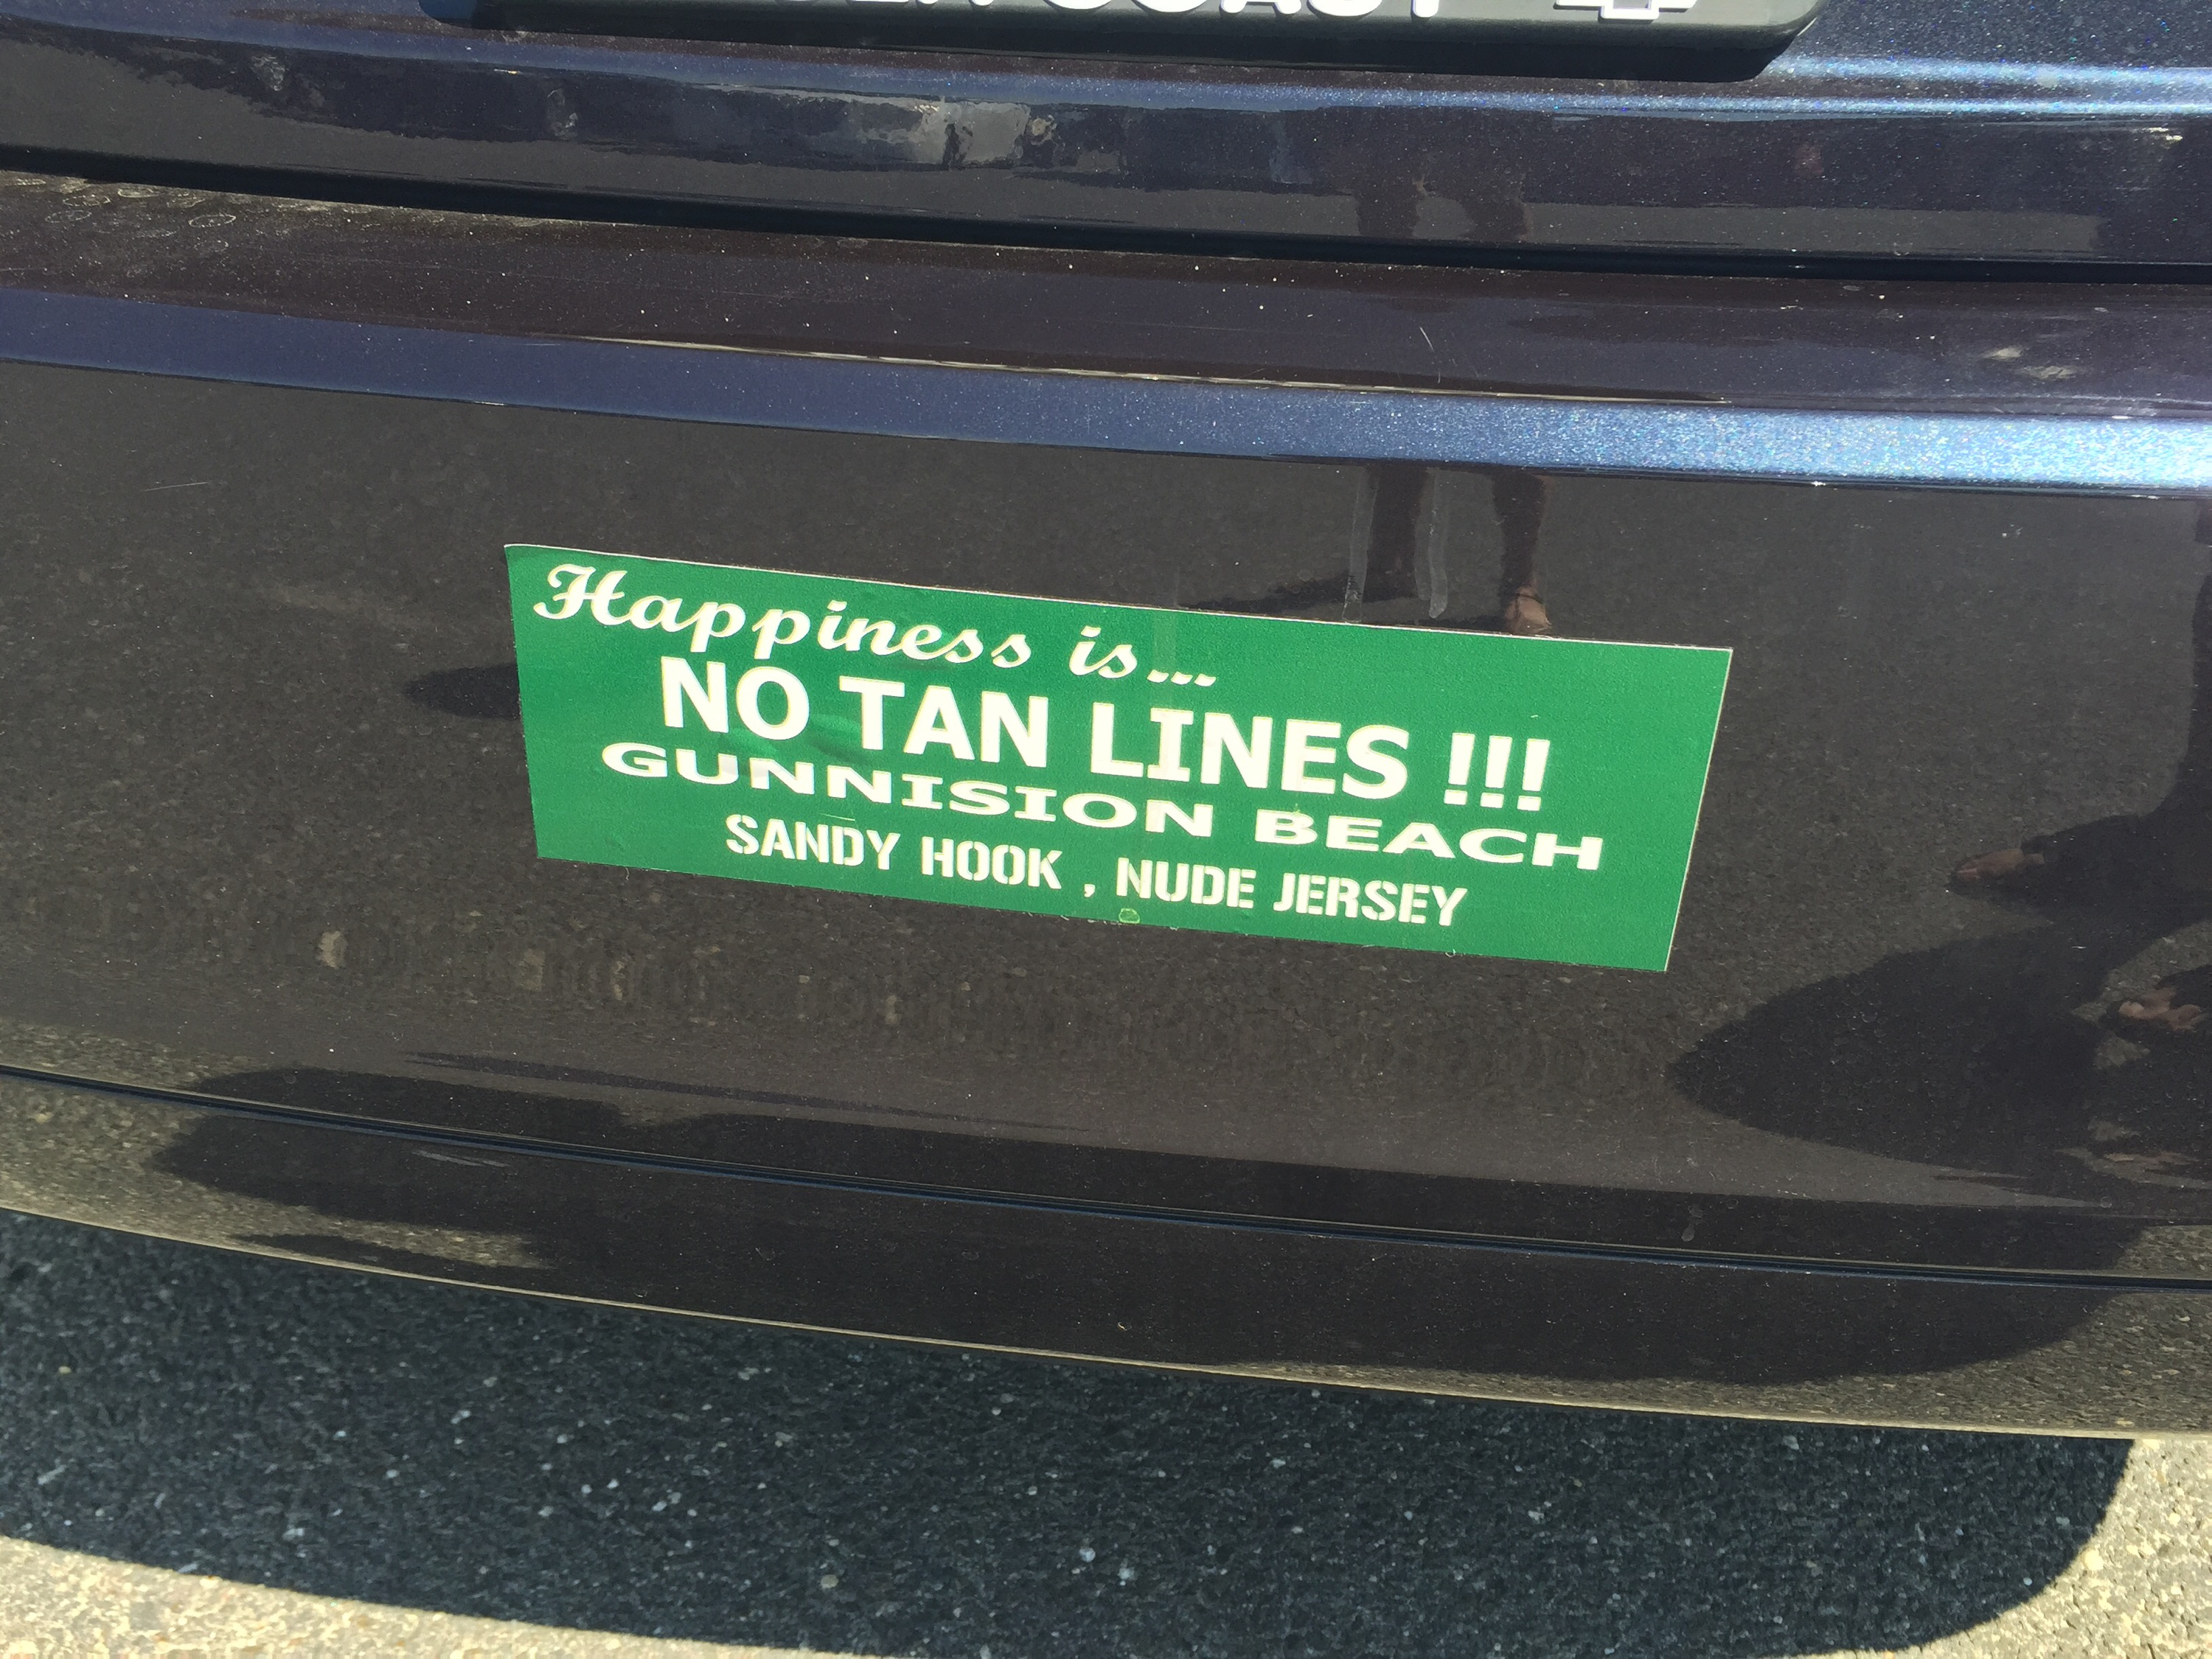 gunnison beach bumper sticker